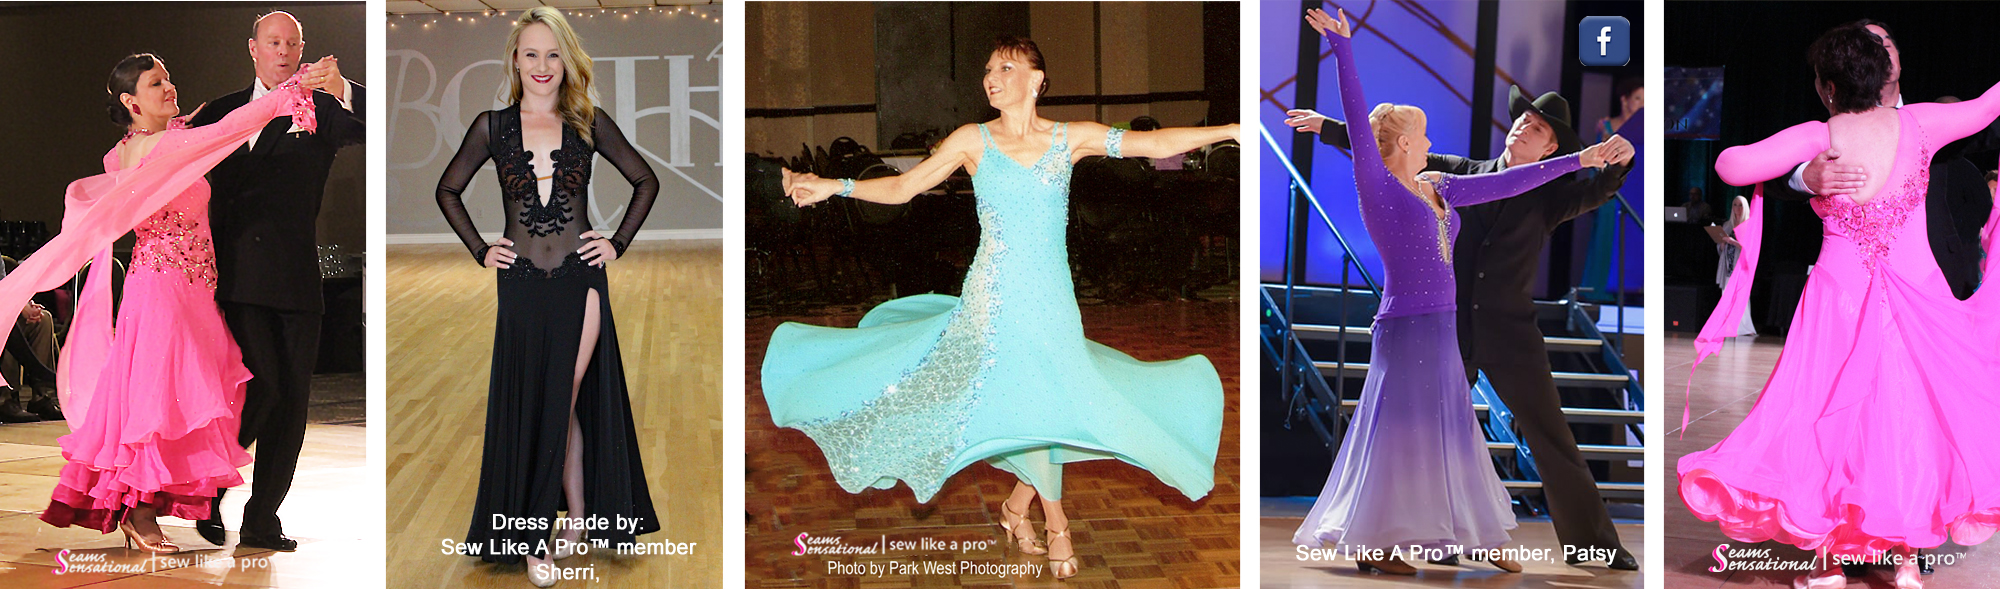 Country and ballroom dancing ballgowns, all SLP or Seams, smooth dancing, Standard dance dress